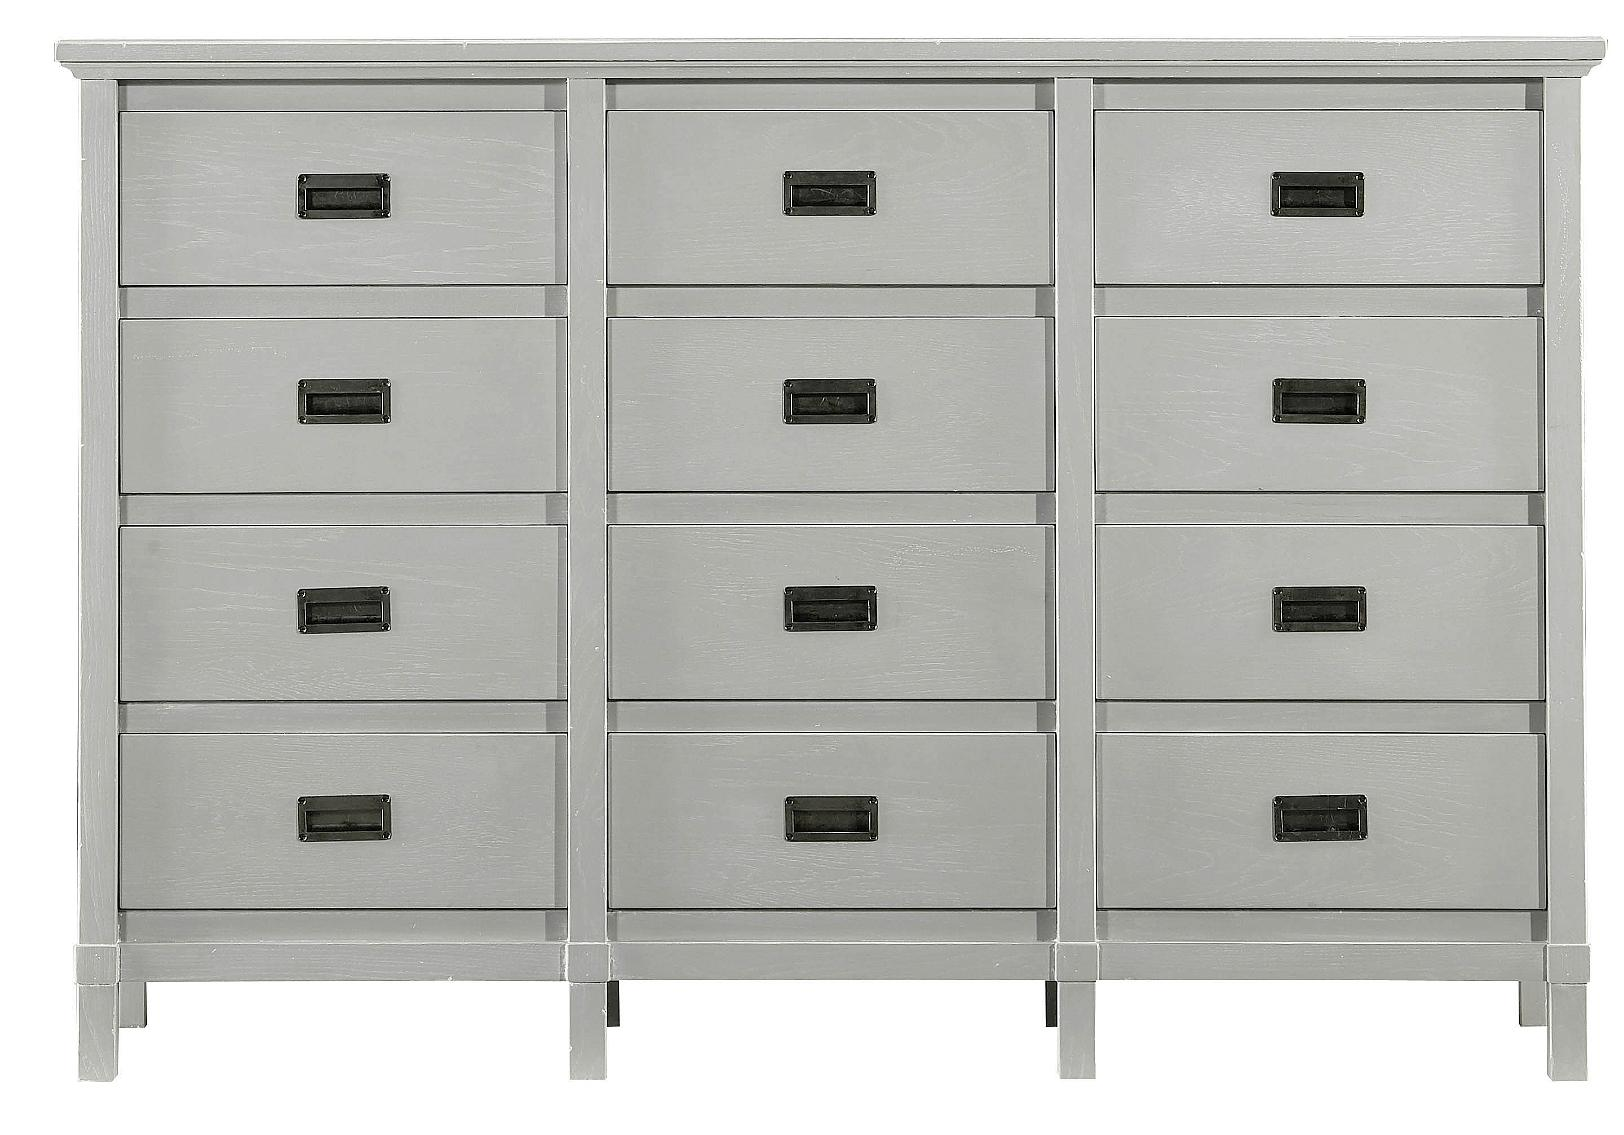 Stanley Furniture Coastal Living Resort Haven's Harbor Dresser - Item Number: 062-C3-05